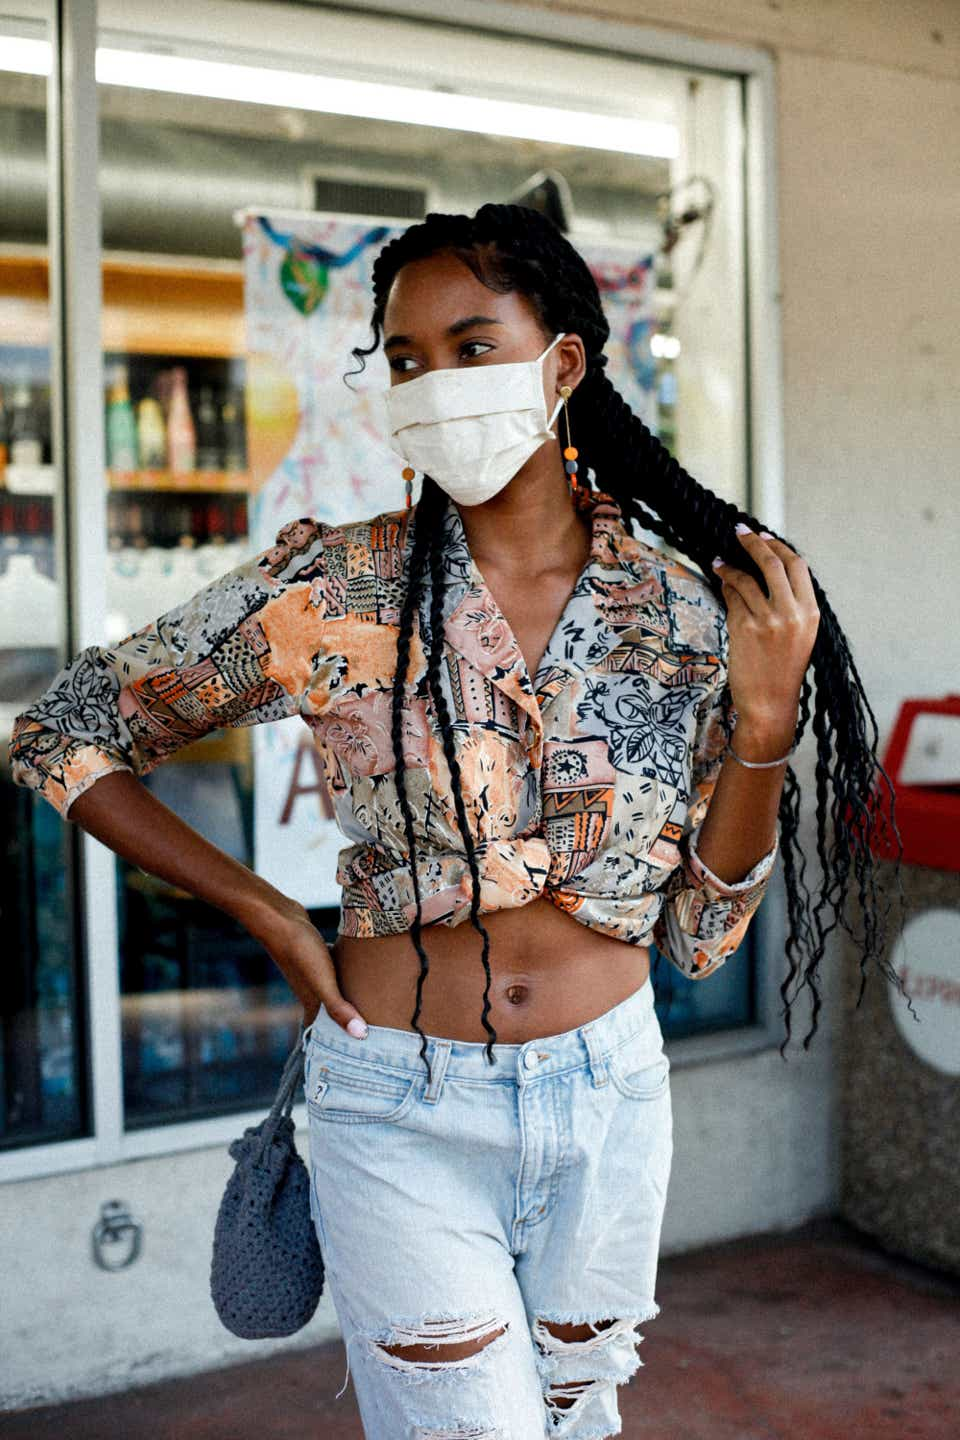 Elidja is wearing a cropped, printed three-quarter sleeve blouse with ripped, light-wash jeans. She's posing, holding her long braids, and wearing a white face mask.